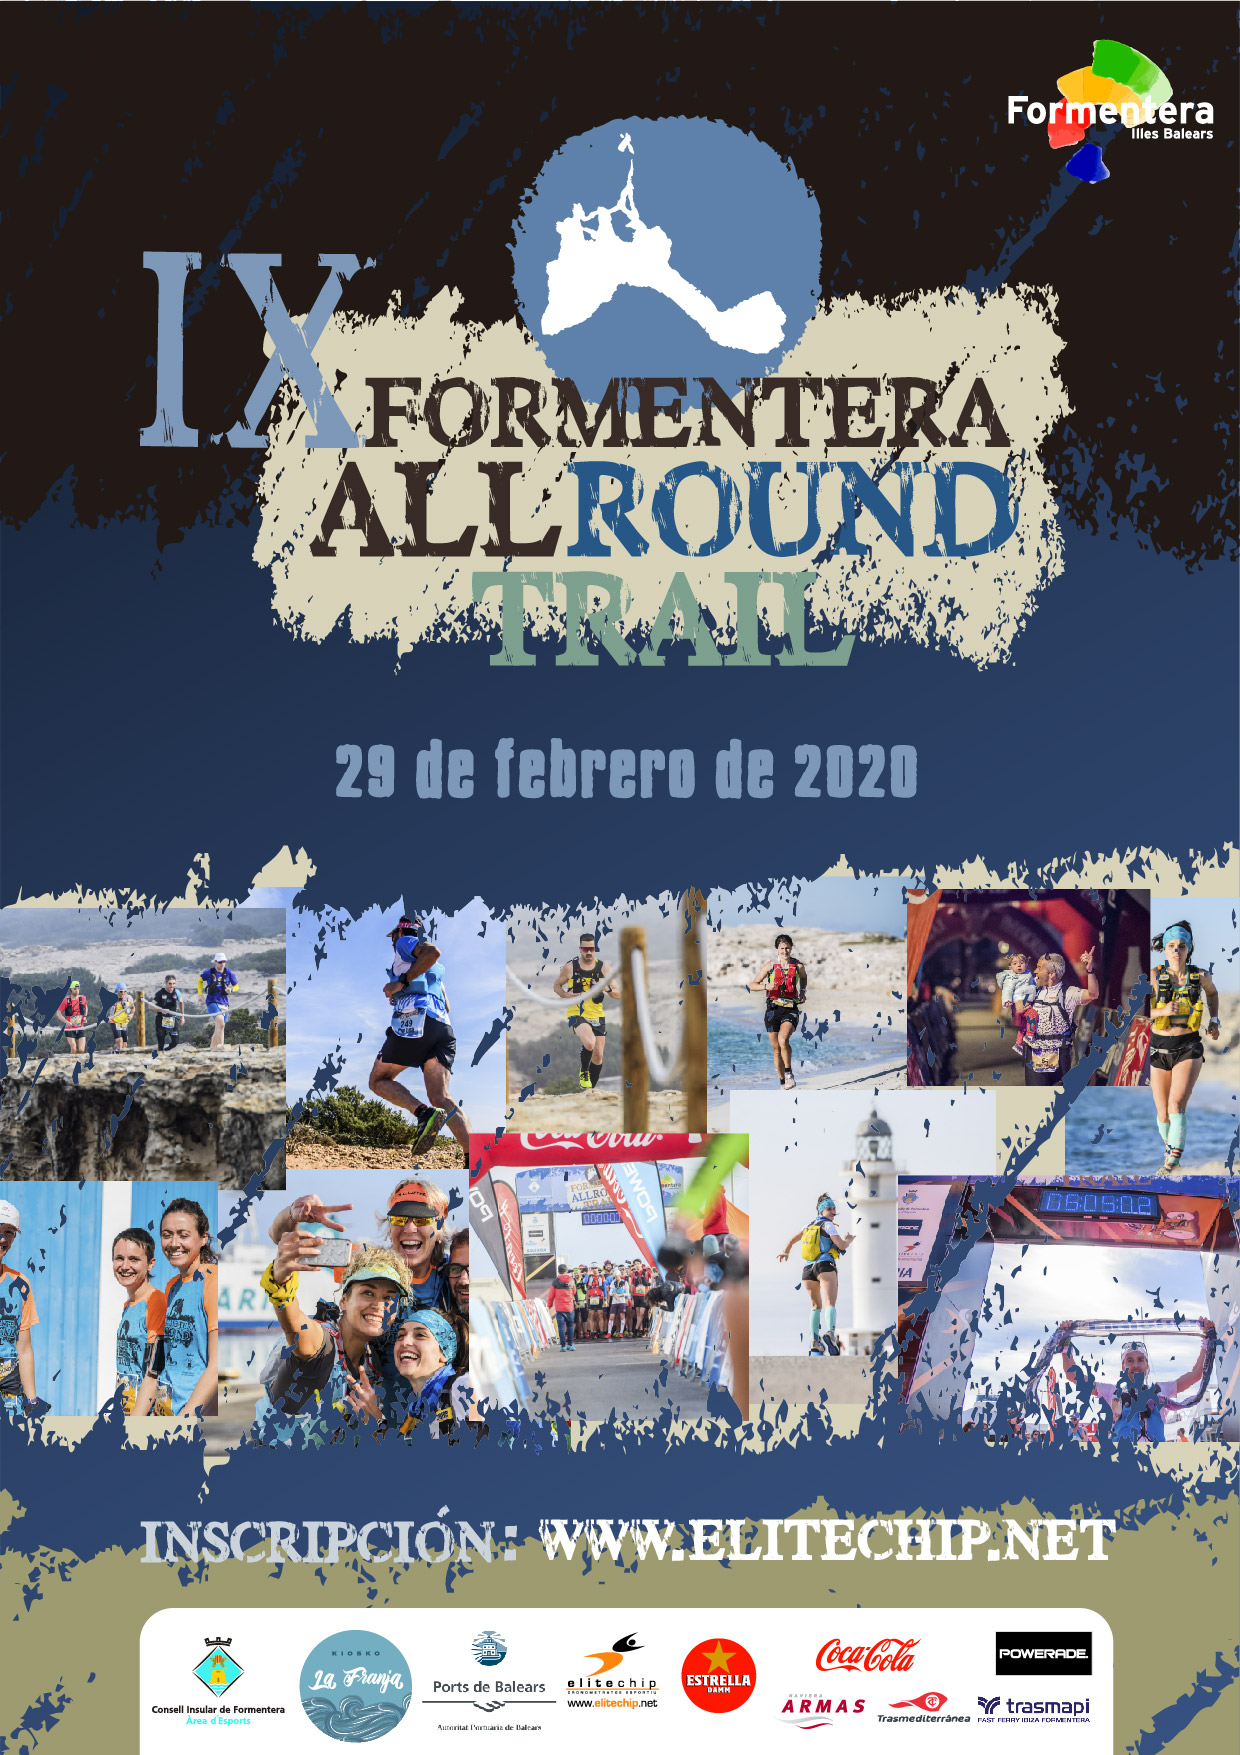 Formentera All Round Trail 2020